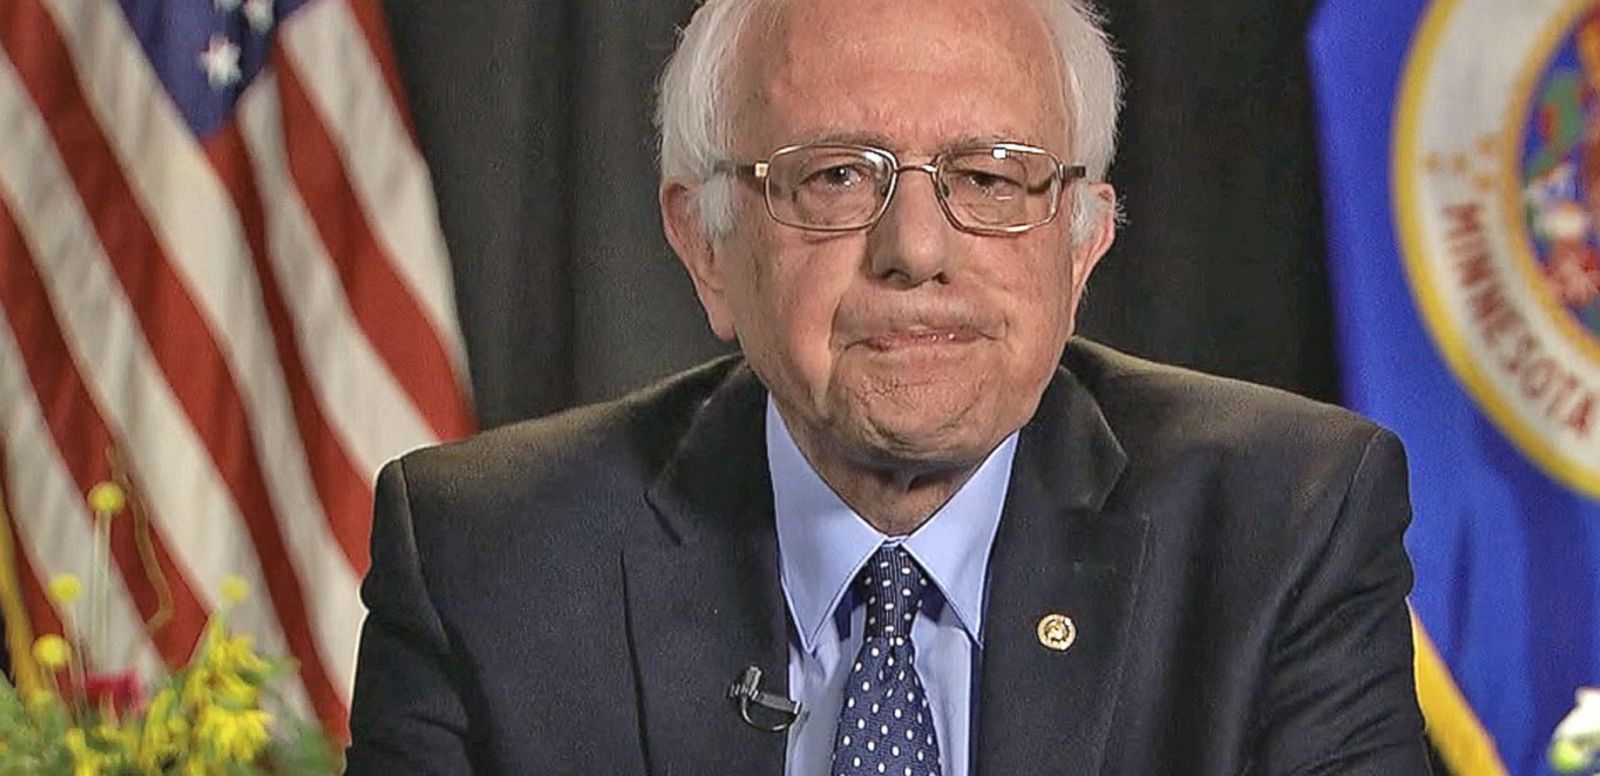 VIDEO: Sen. Bernie Sanders on South Carolina Democratic Primary